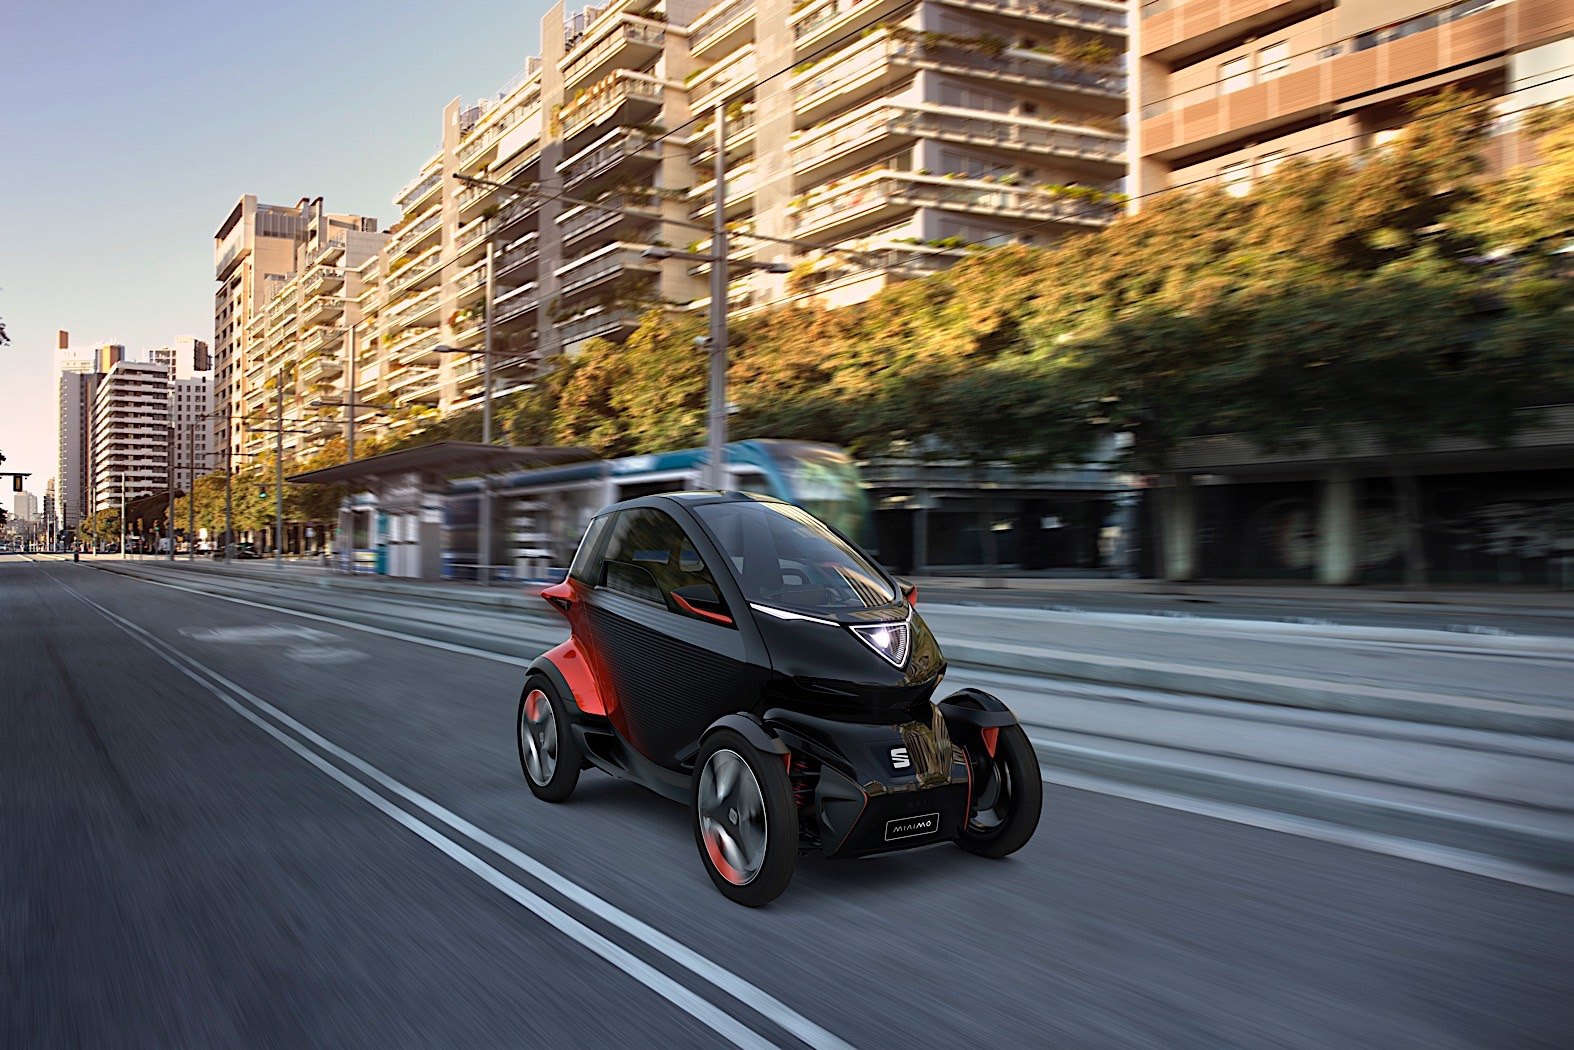 seat-minimo-concept-car-is-nothing-but-an-electric-motorcycle-with-a-roof-132614_1